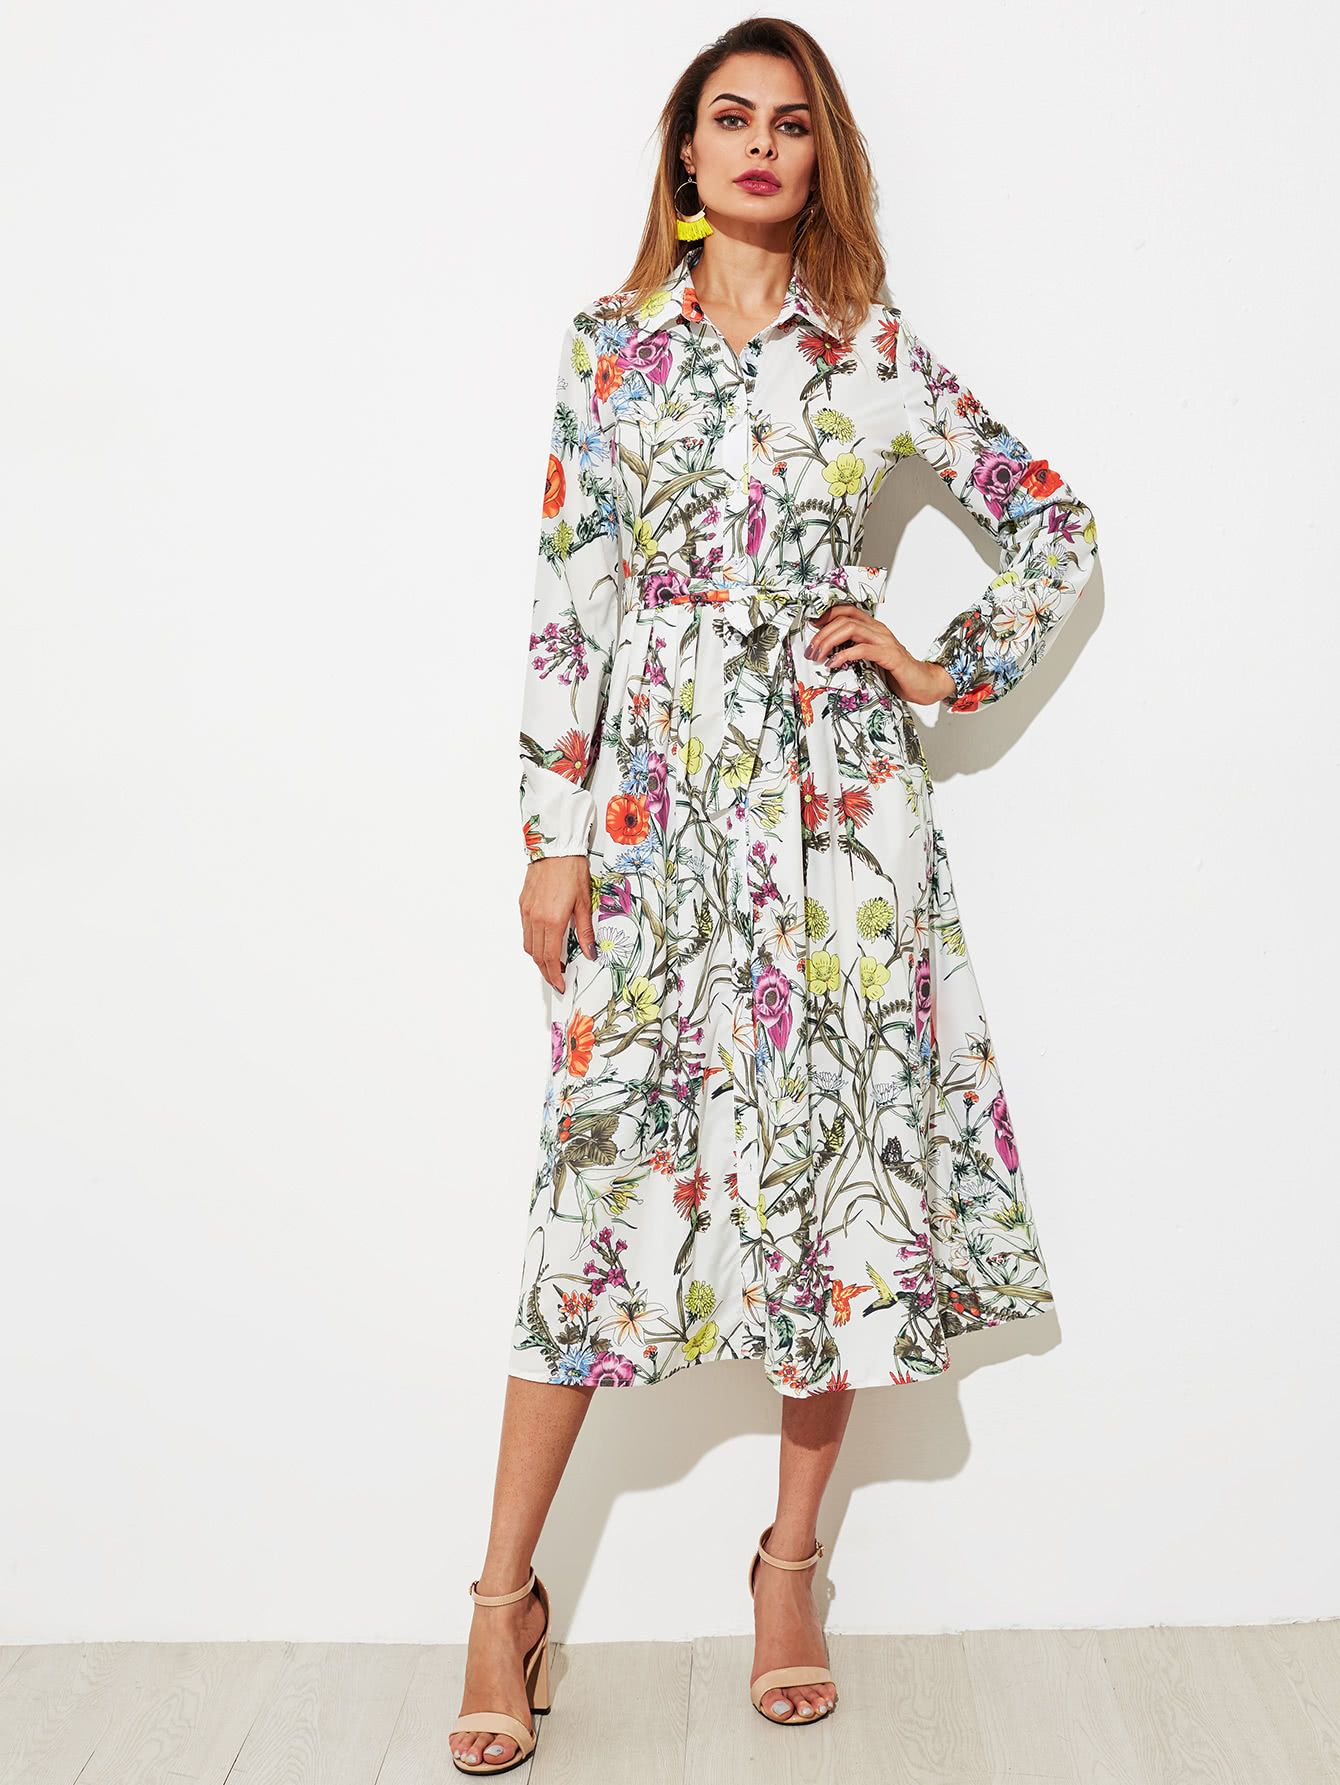 c5158b1766 Shop Botanical Print Self Belted Shirt Dress online. SheIn offers Botanical  Print Self Belted Shirt Dress & more to fit your fashionable needs.